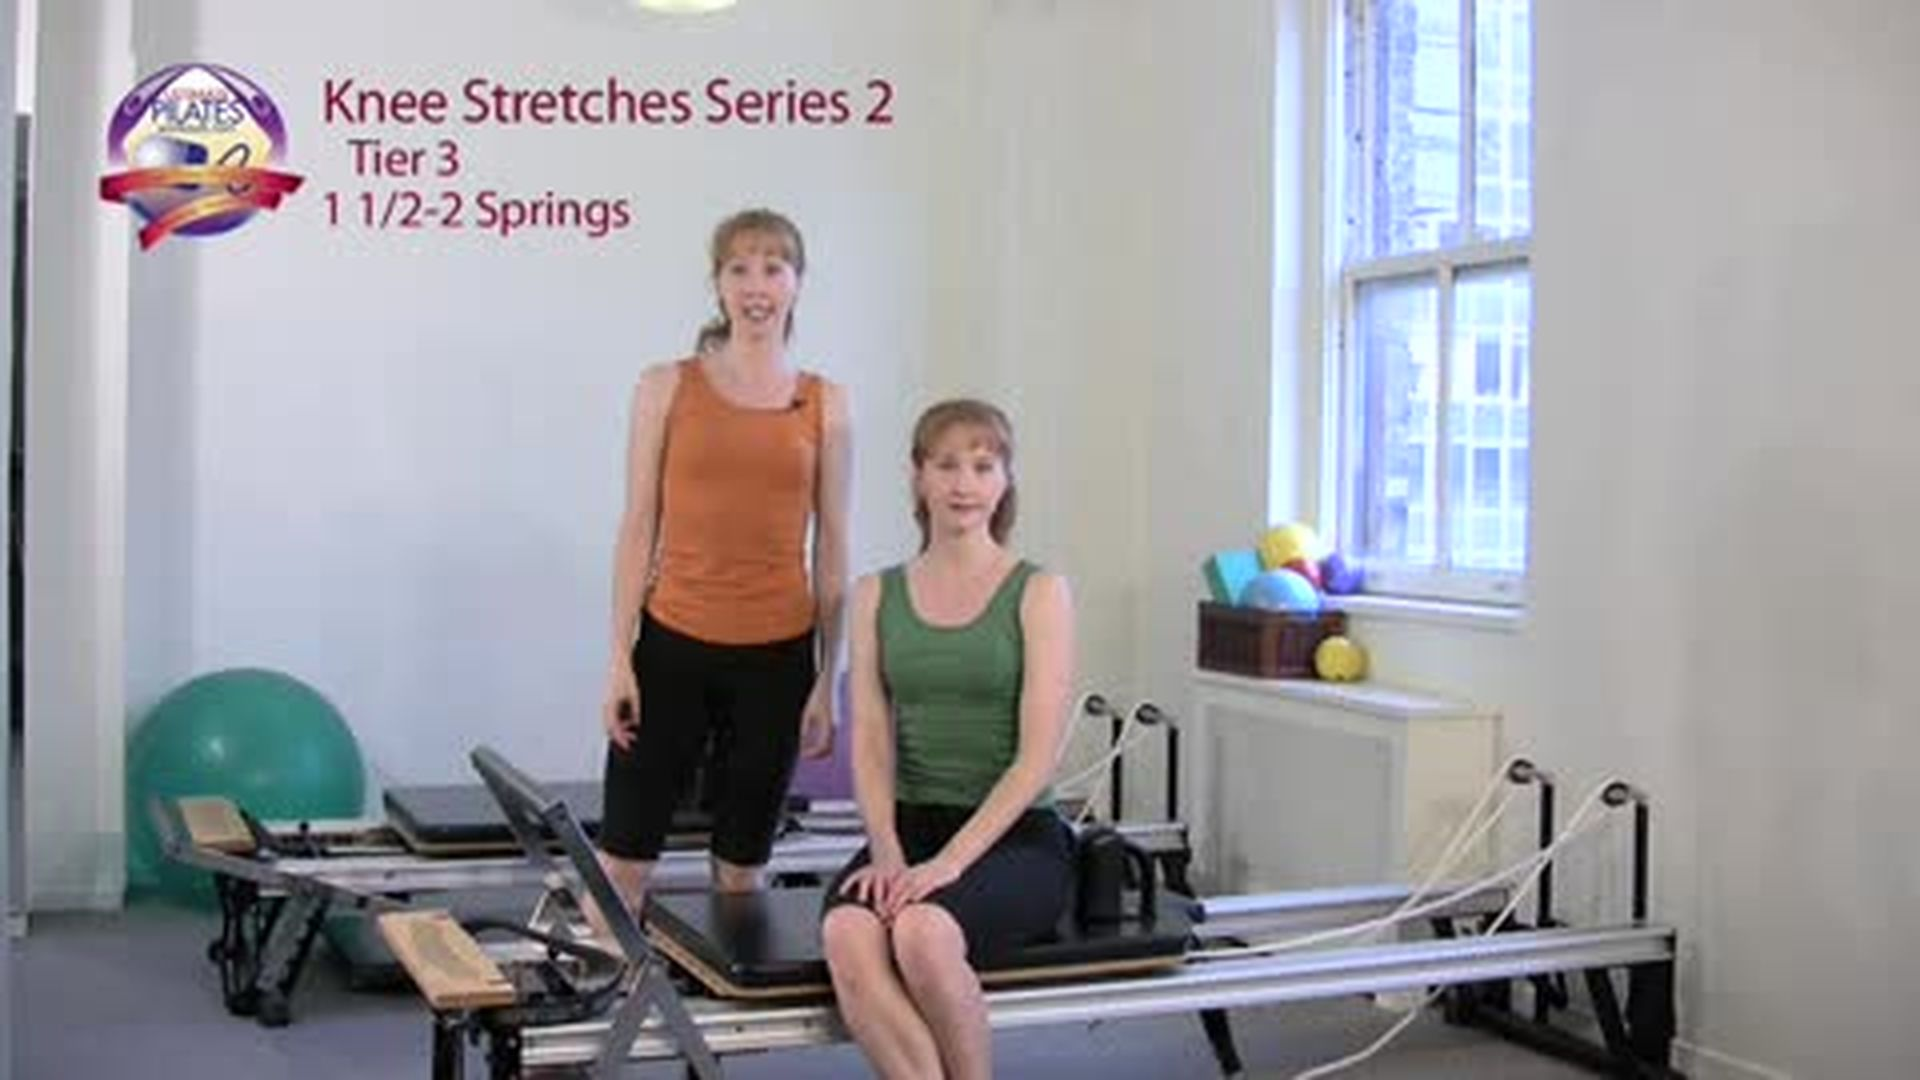 Knee Stretches Series 2